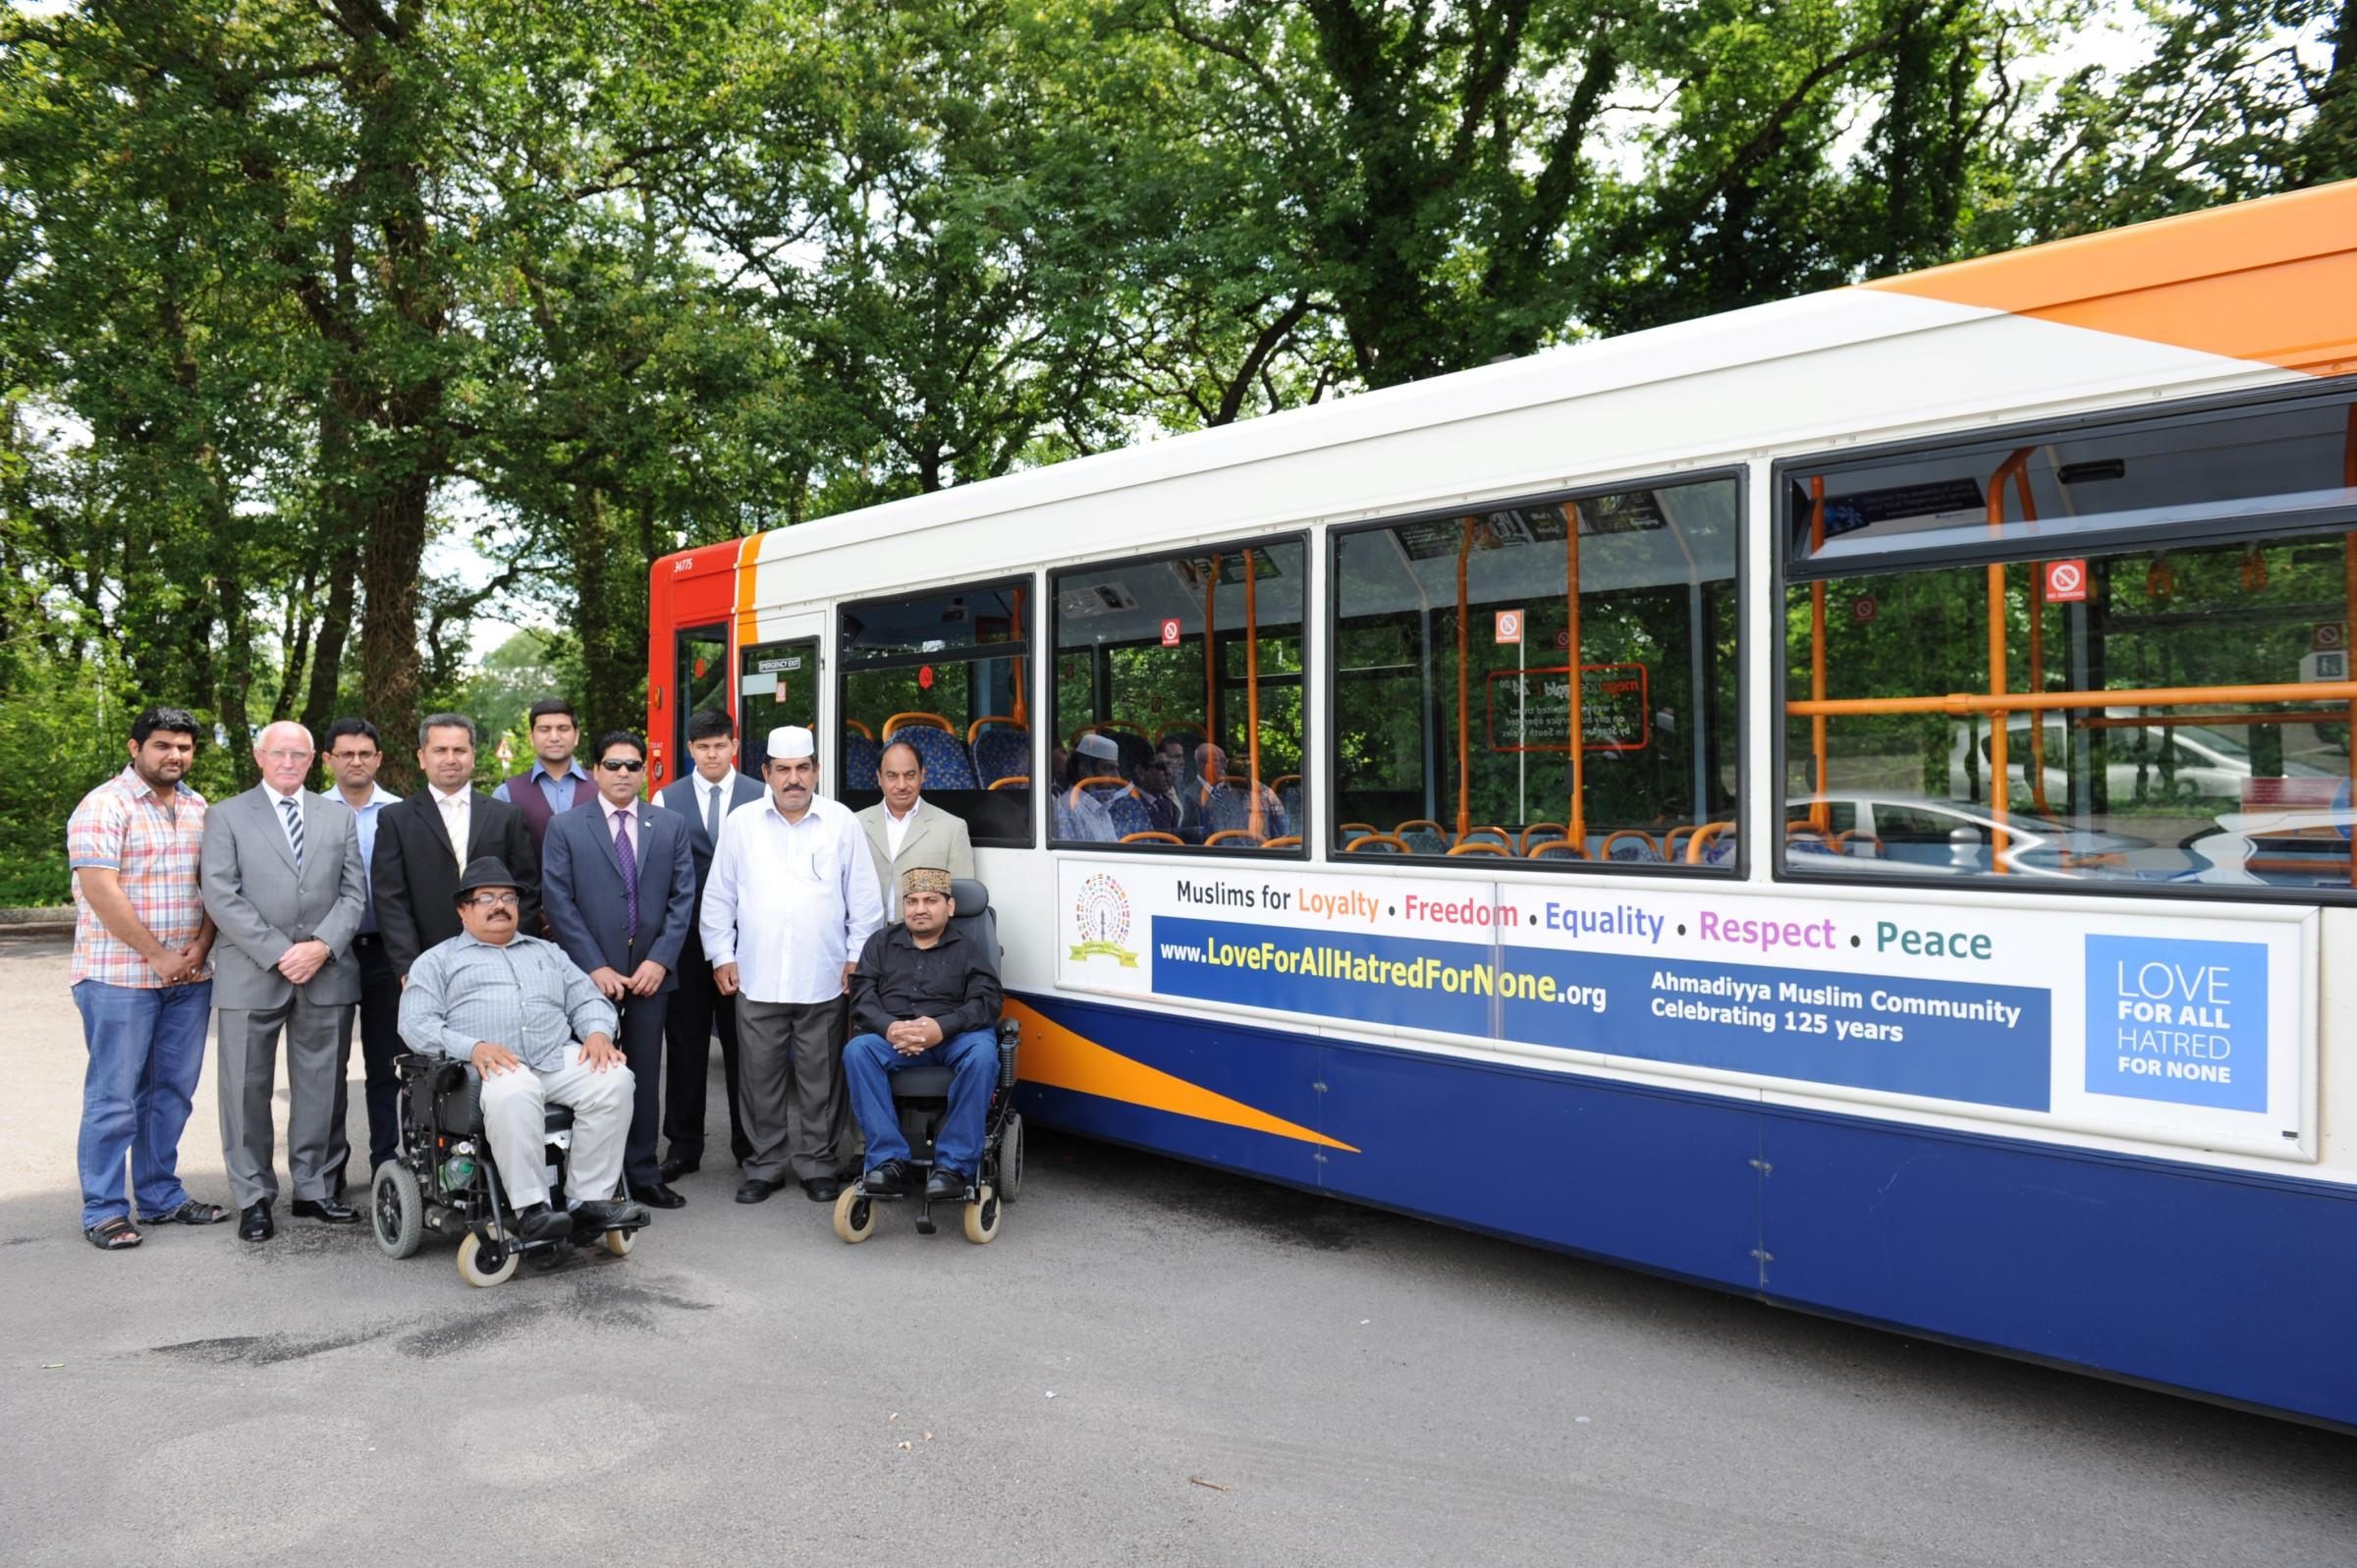 Campaign for tolerance launched on Newport buses